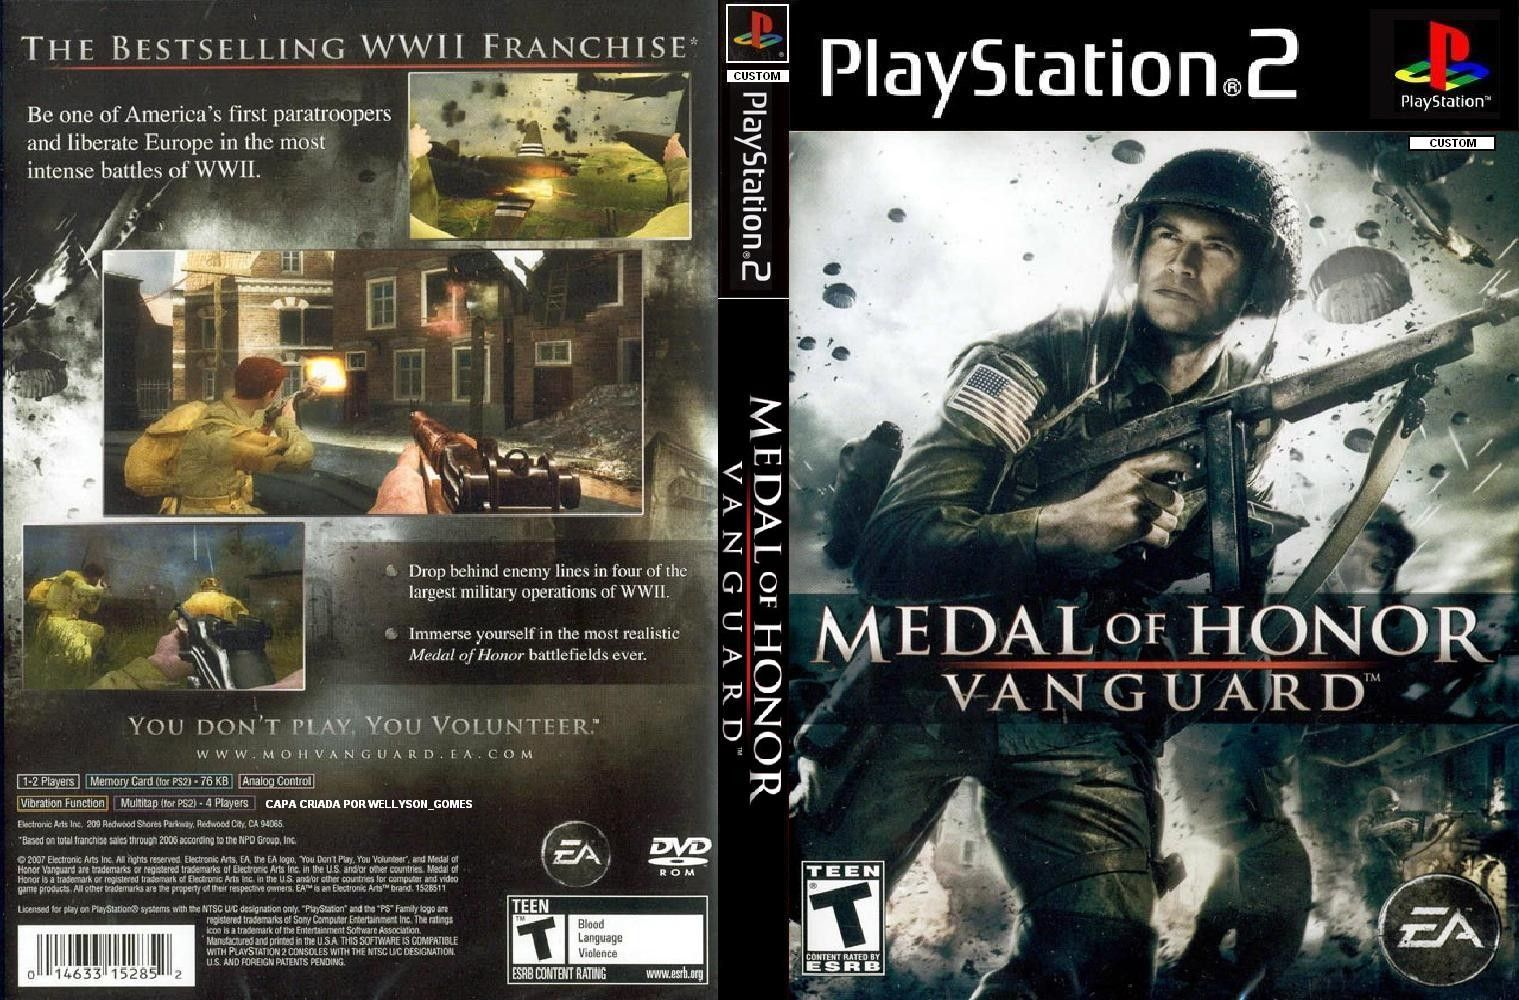 A Excellent Game Medal Of Honor Intense Paratrooper